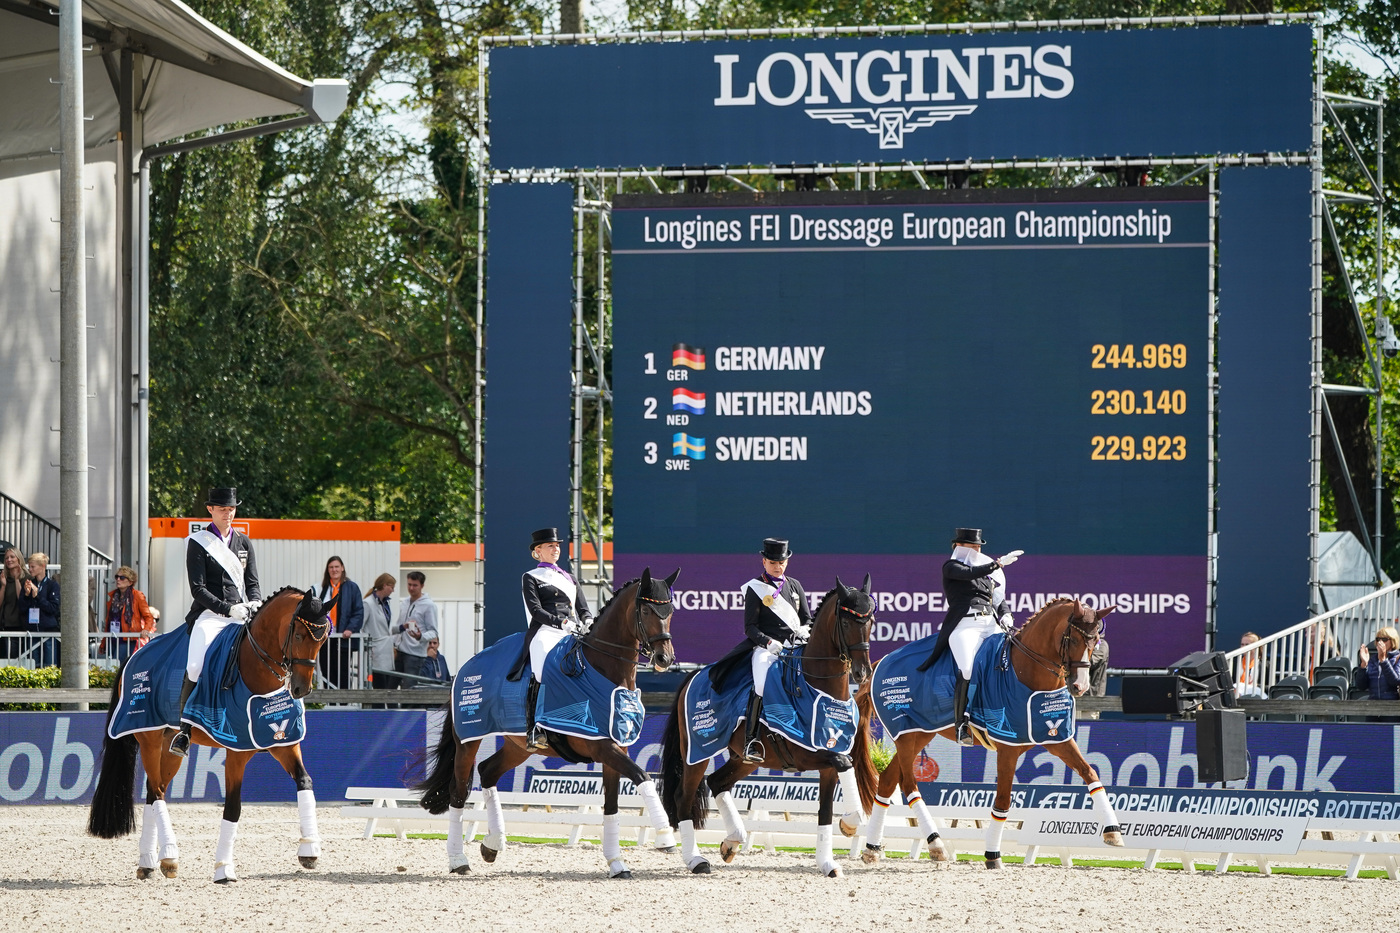 Longines Show Jumping Event: One week of captivating competitions and exceptional performances at the Longines FEI European Championships 2019 6